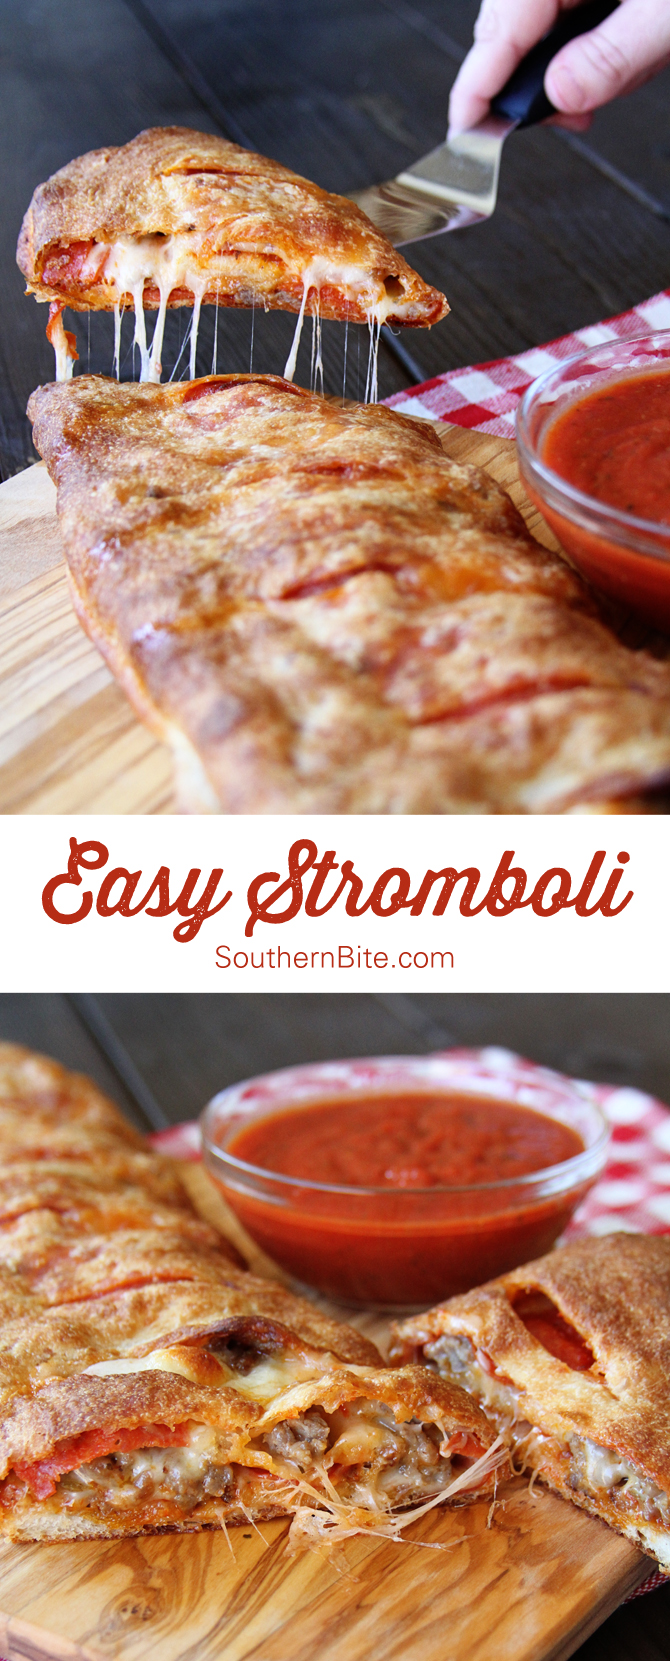 This Quick and Easy Stromboli is a family favorite!  It's super easy and can be customized with your favorite toppings!